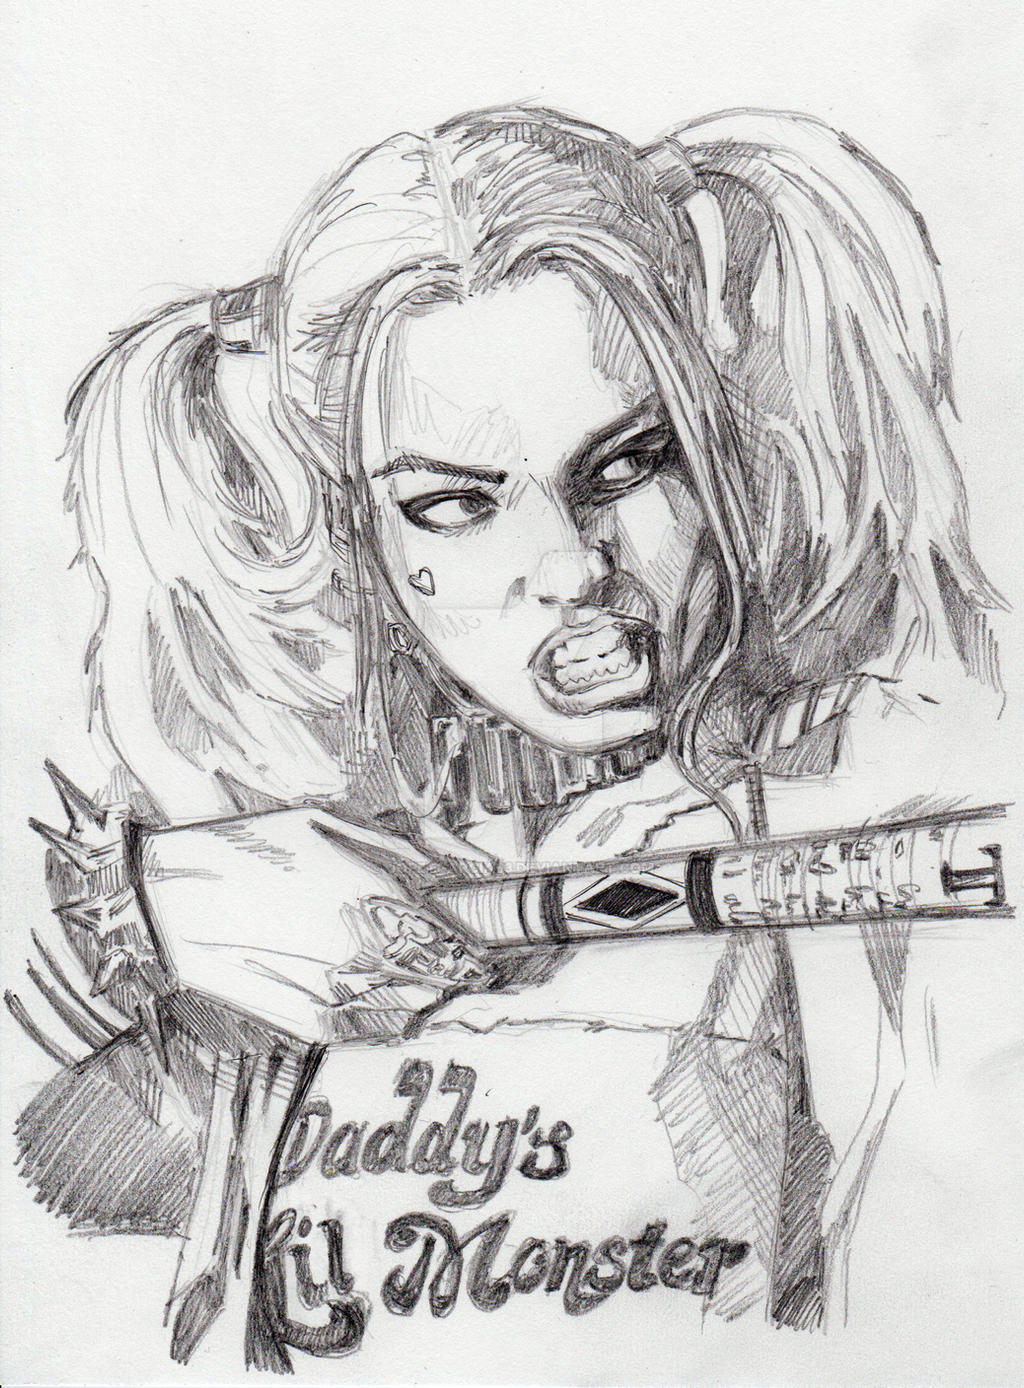 Harley quinn pencils suicide squad by jopetgarcia63 on